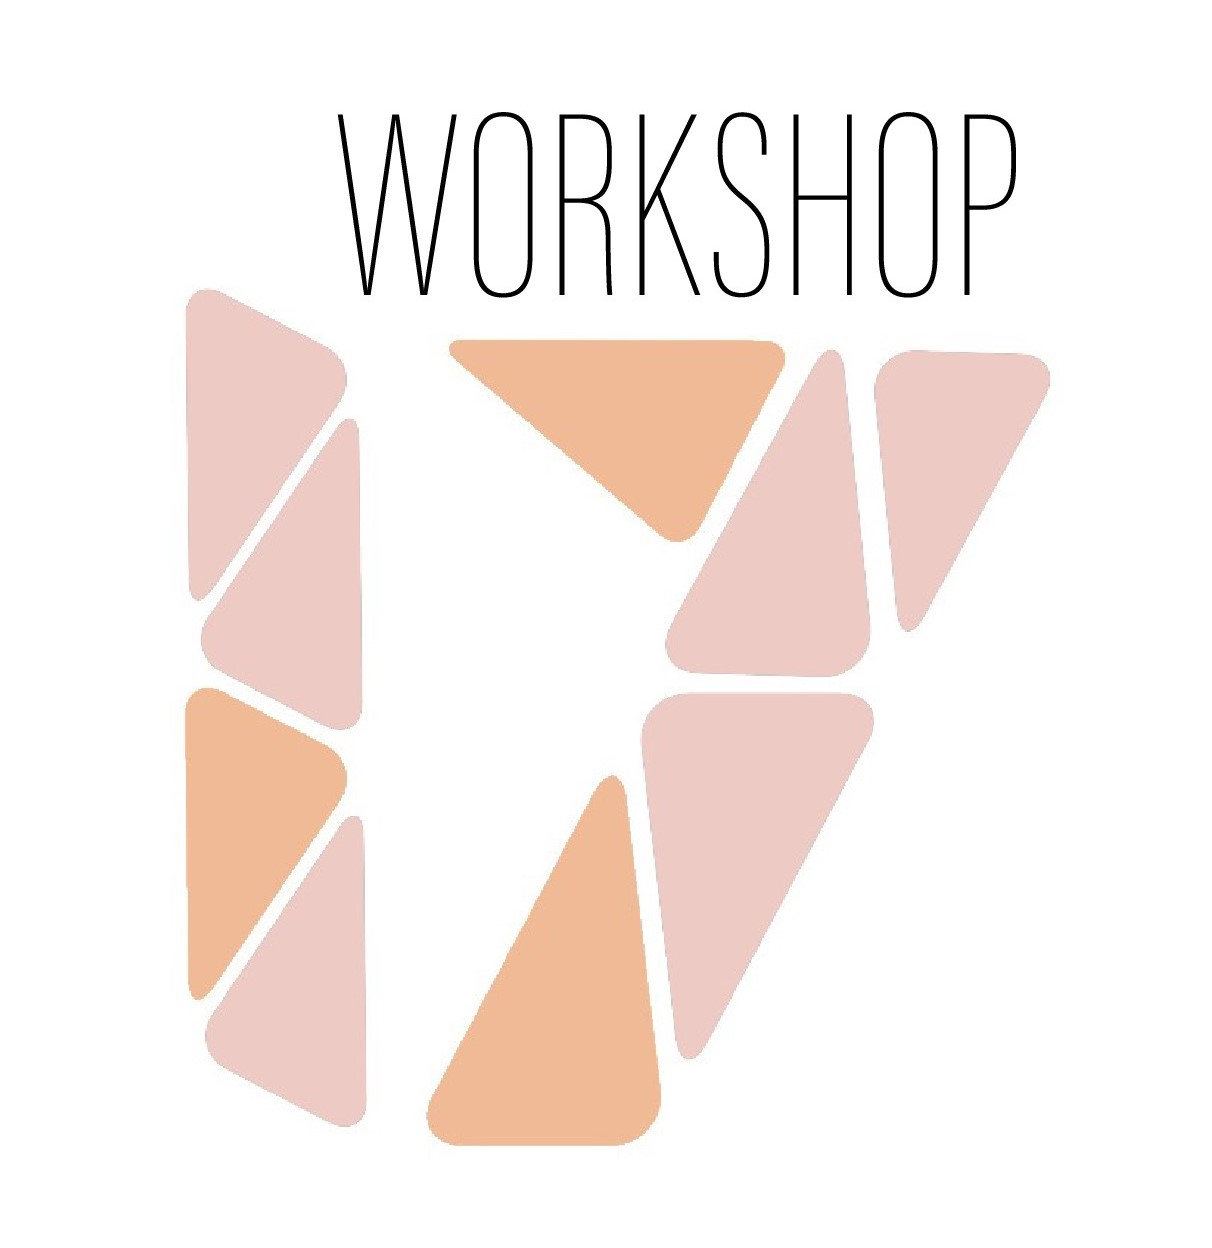 Workshop 17